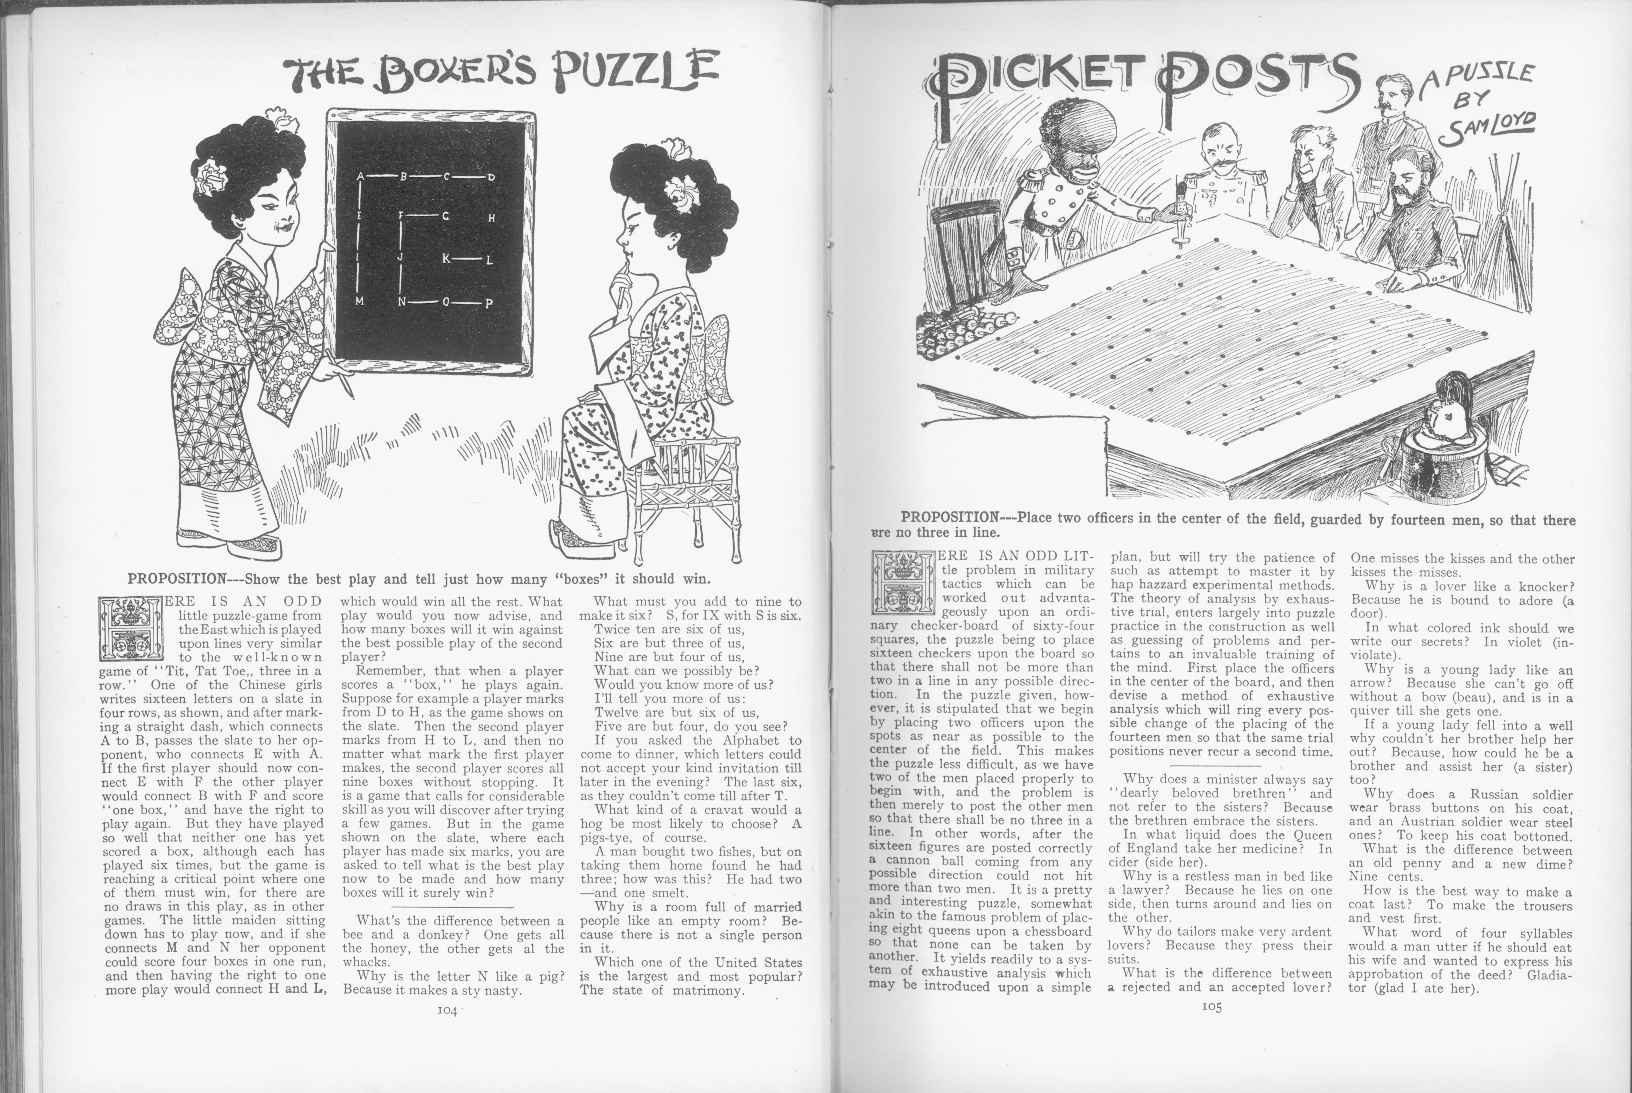 Sam Loyd - Cyclopedia of Puzzles - page 104-105